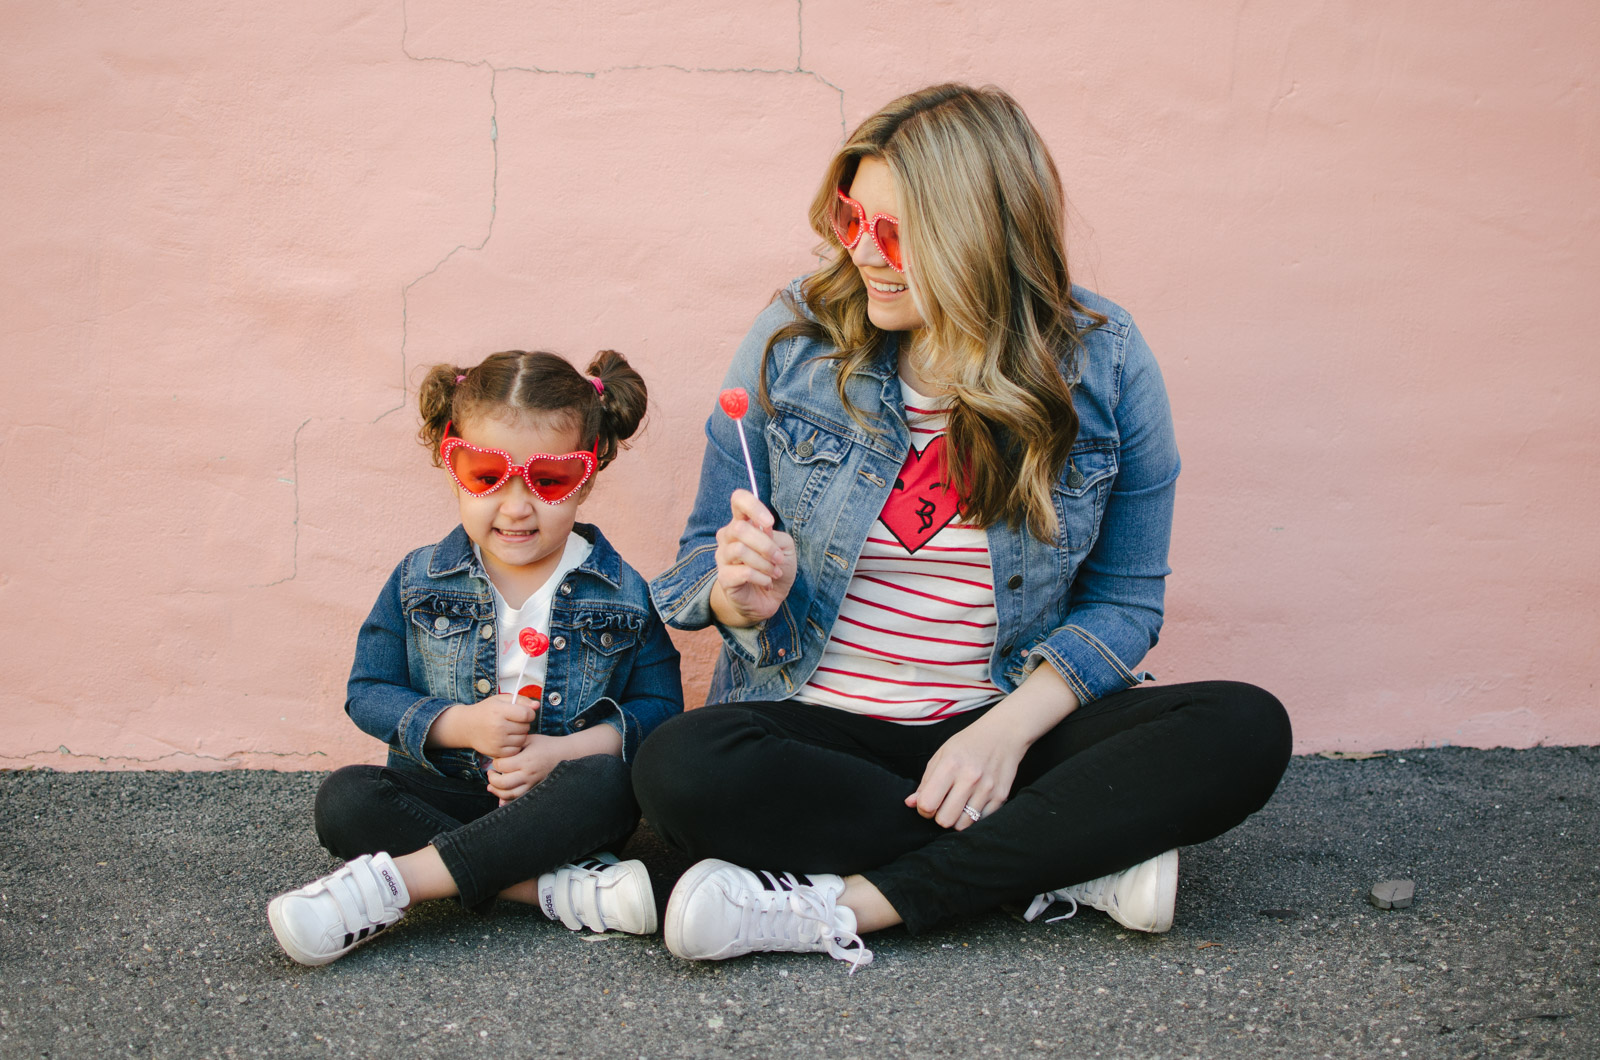 mommy and outfits for valentines day - valentines outfits | Shop these outfits or see more mommy and me outfits at bylaurenm.com!